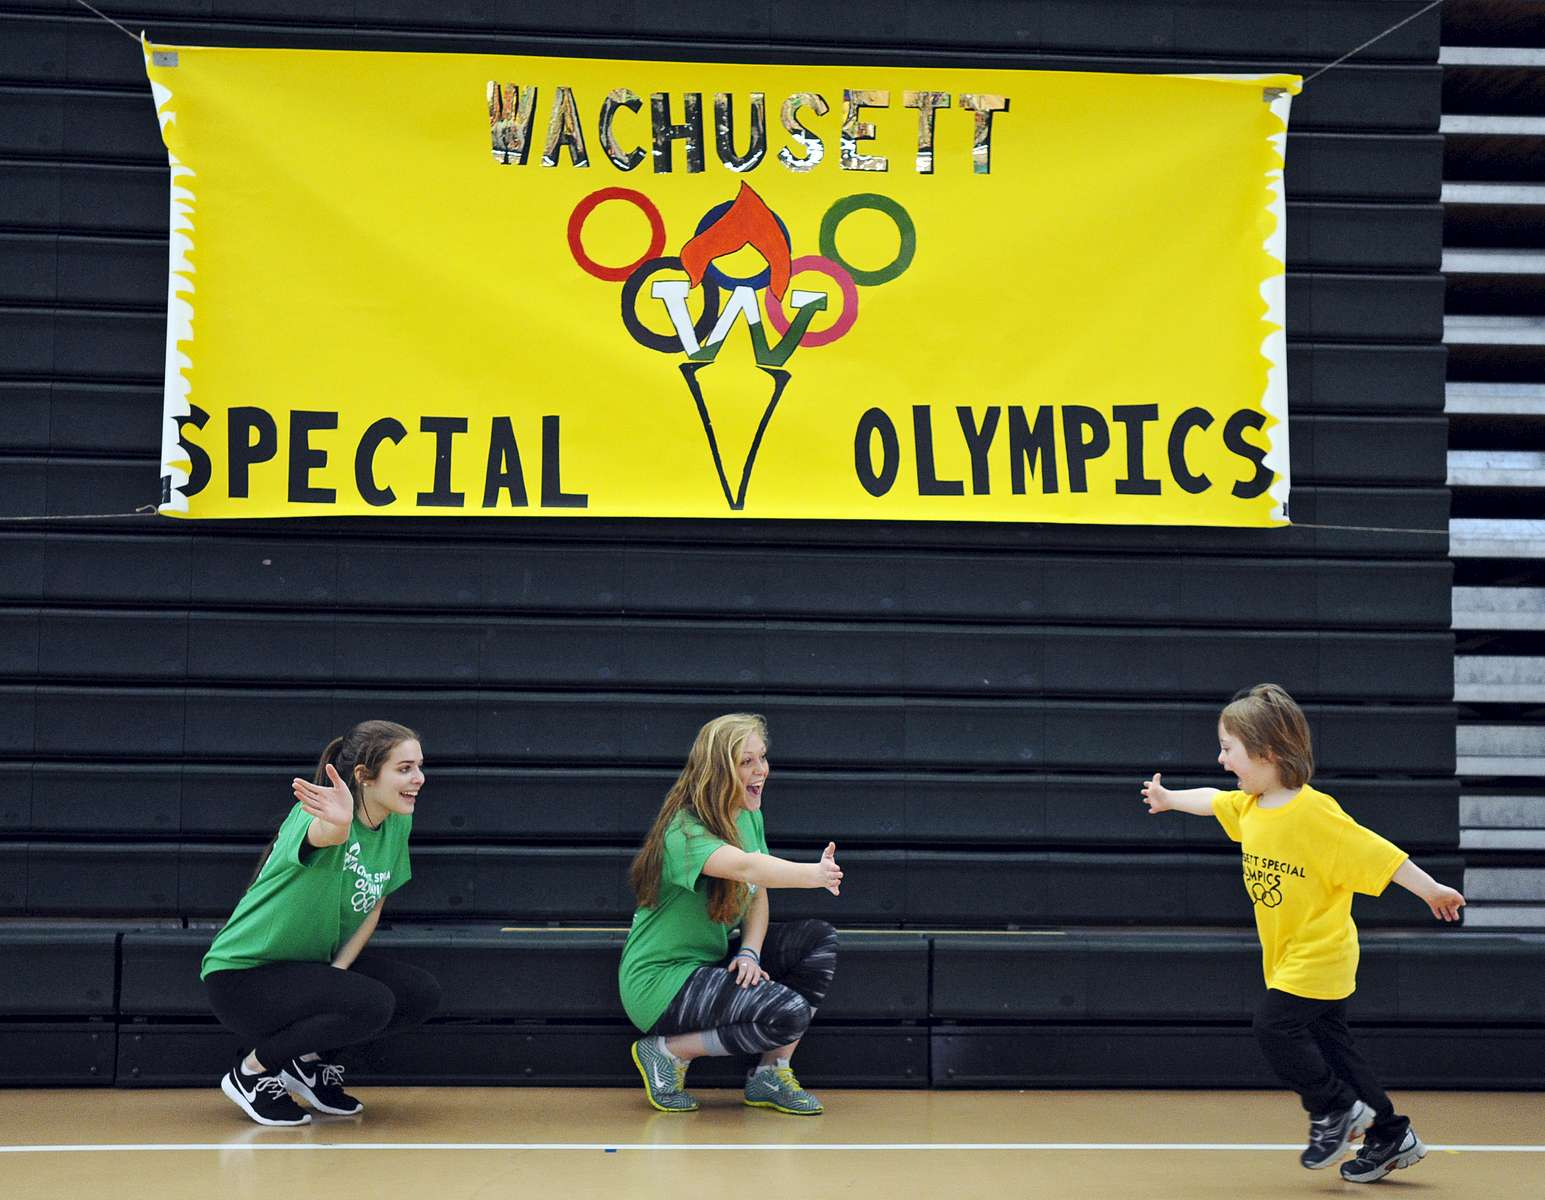 Jacob Reando, 5, of Paxton collects high fives from Wachusett High School freshman Maddie Wilde, 15, and junior Alexis Bergman, 17, far left, during the 3rd annual Wachusett Special Olympics on Thursday, March 17, 2016. T&G Staff/Christine Hochkeppel